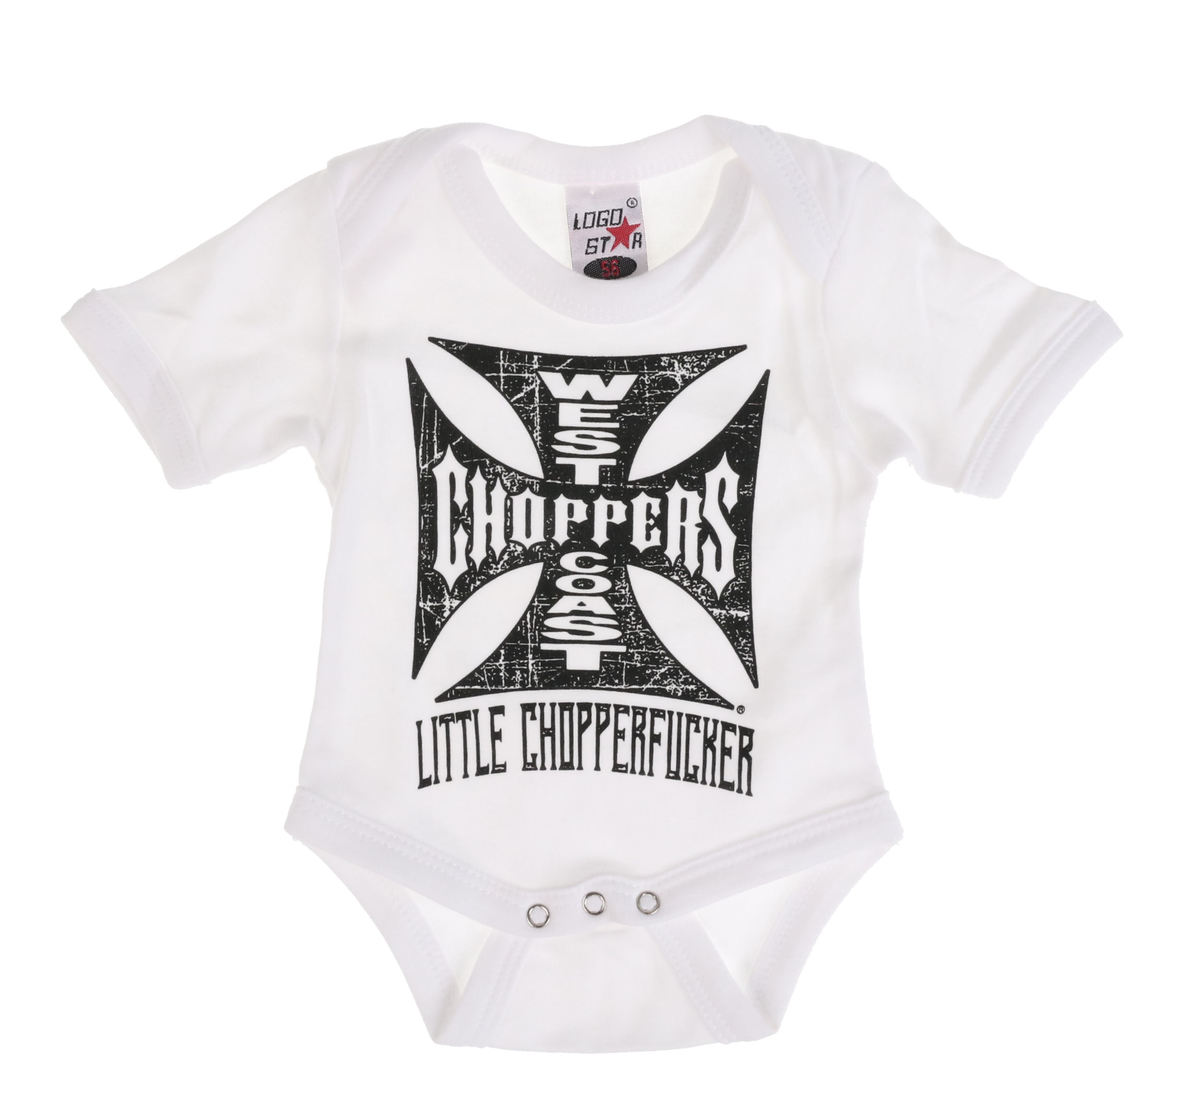 body dětské WEST COAST CHOPPERS - ONESIE LITTLE CHOPPERFUCKER BABY CREEPER - White - WCCRP002WT